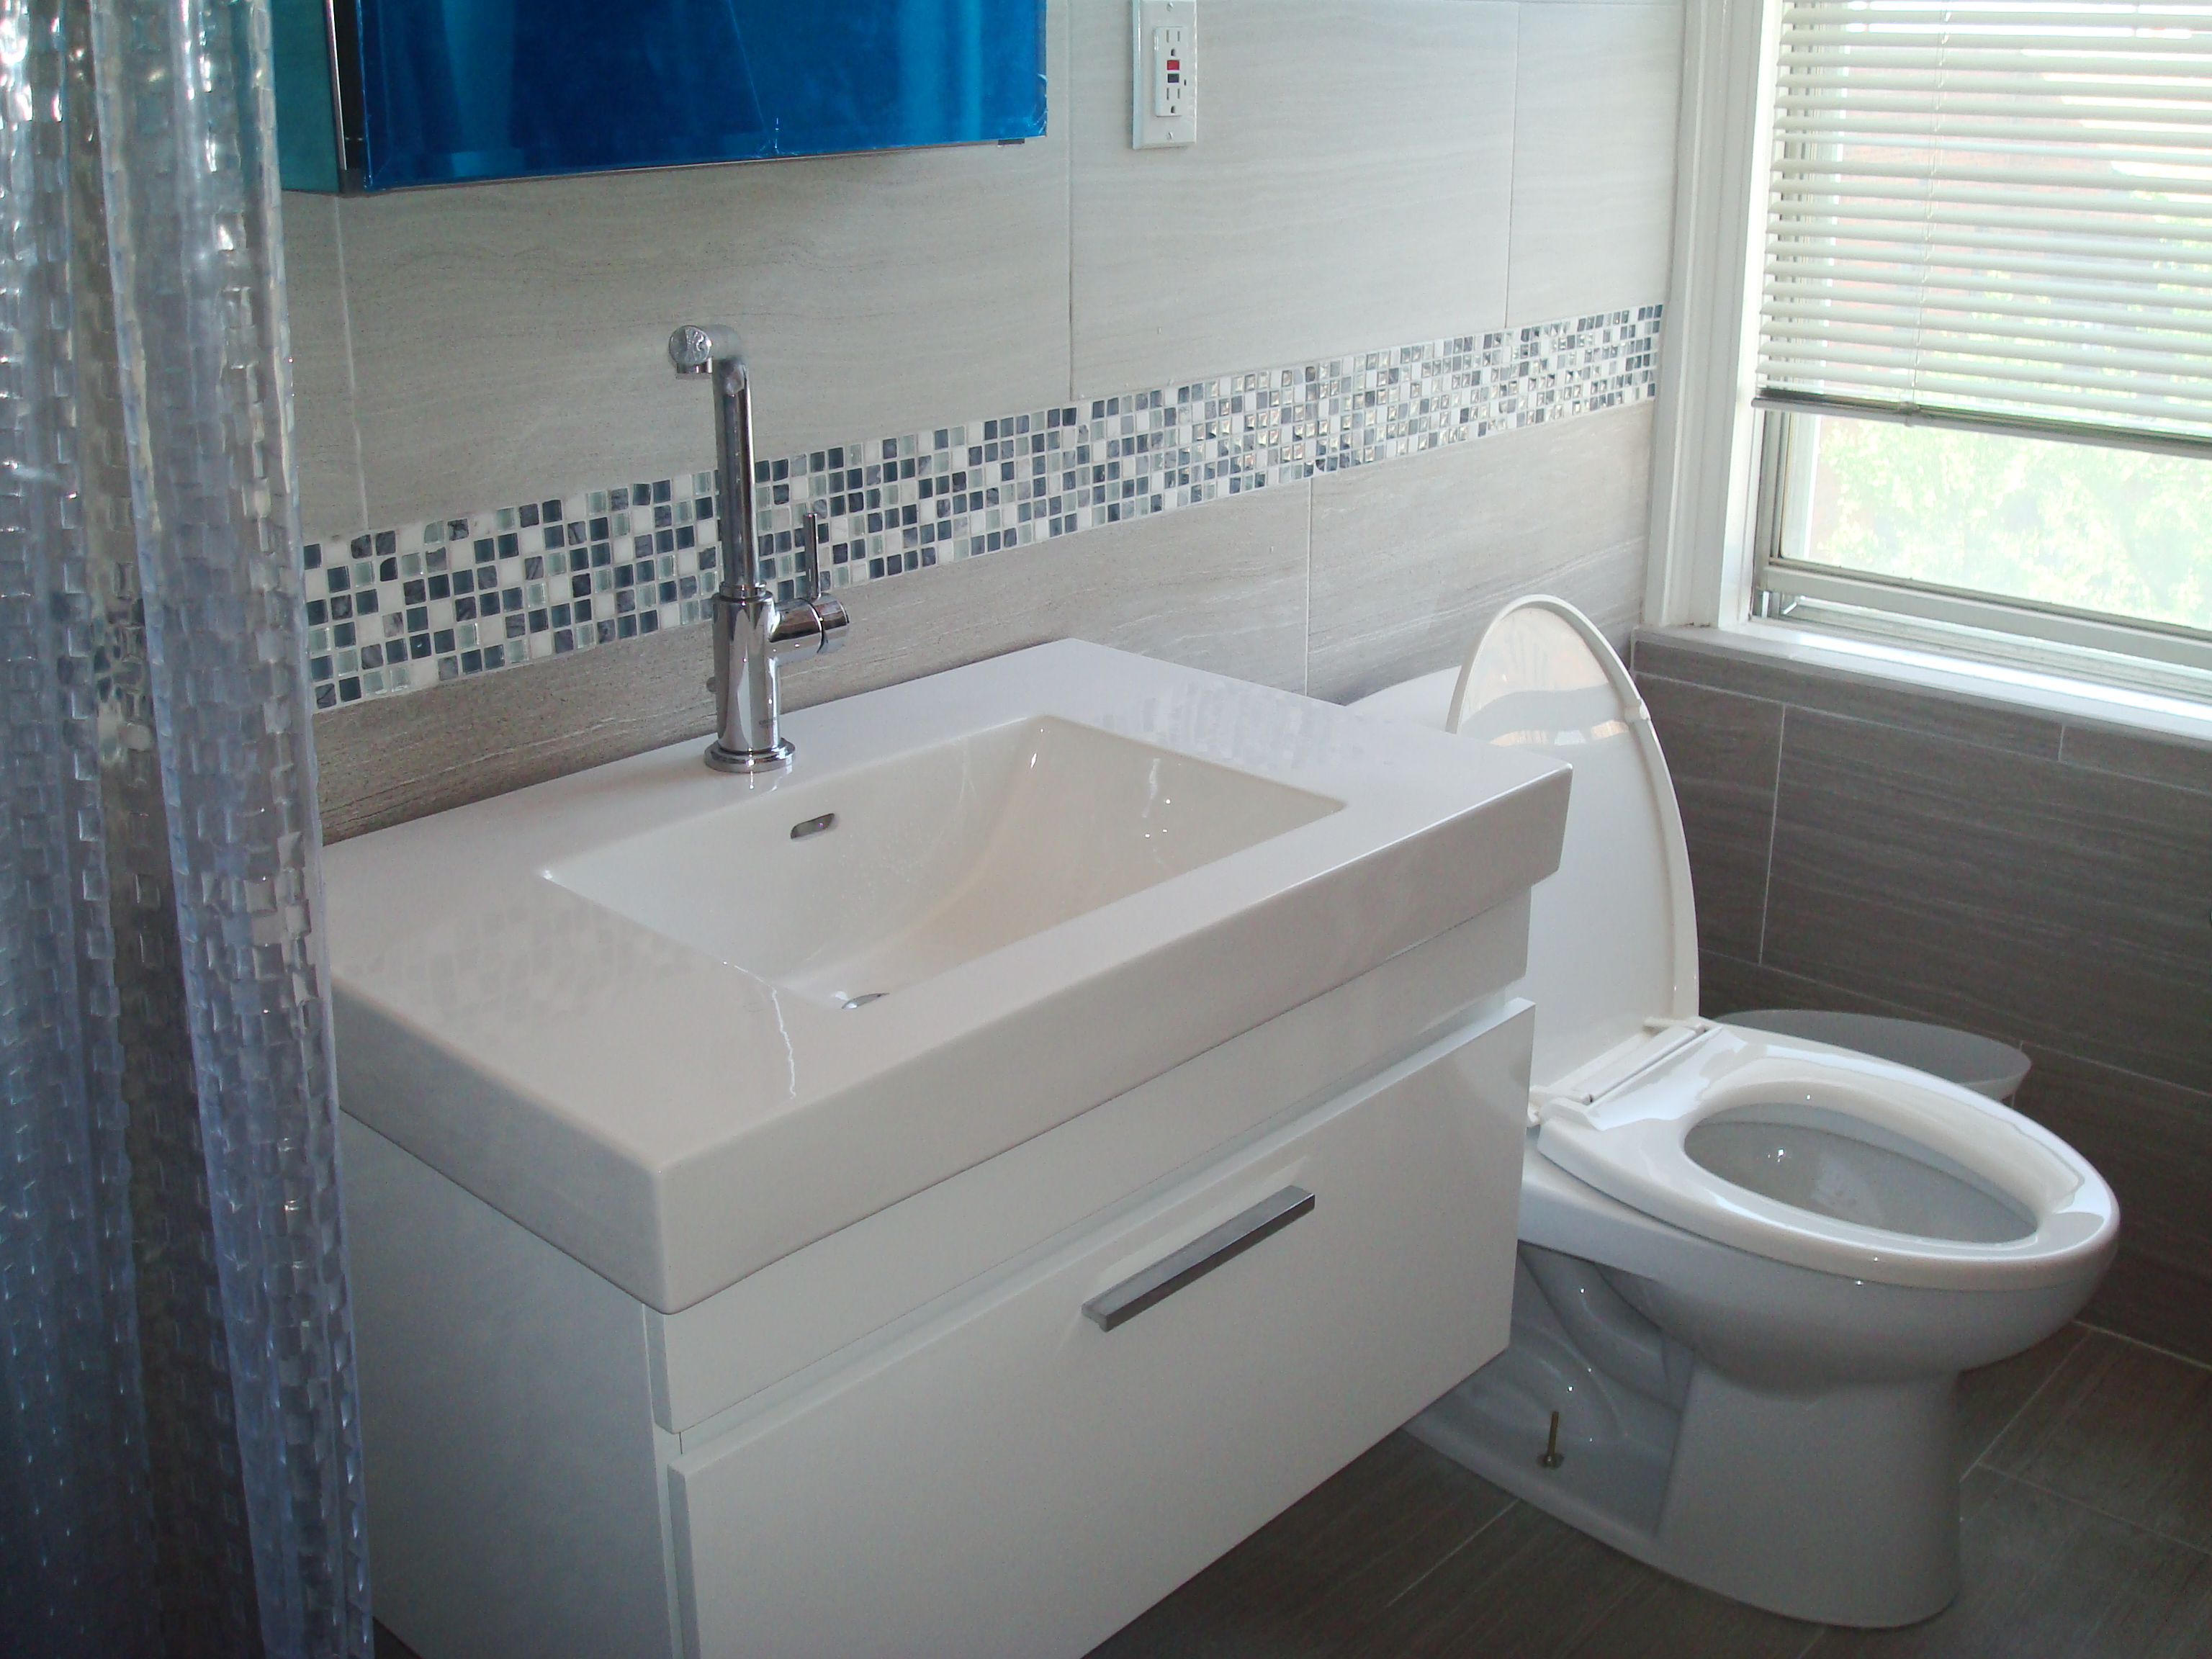 New York City Bathroom Remodeling Kitchen Remodeling NYC - Bathroom remodel memphis